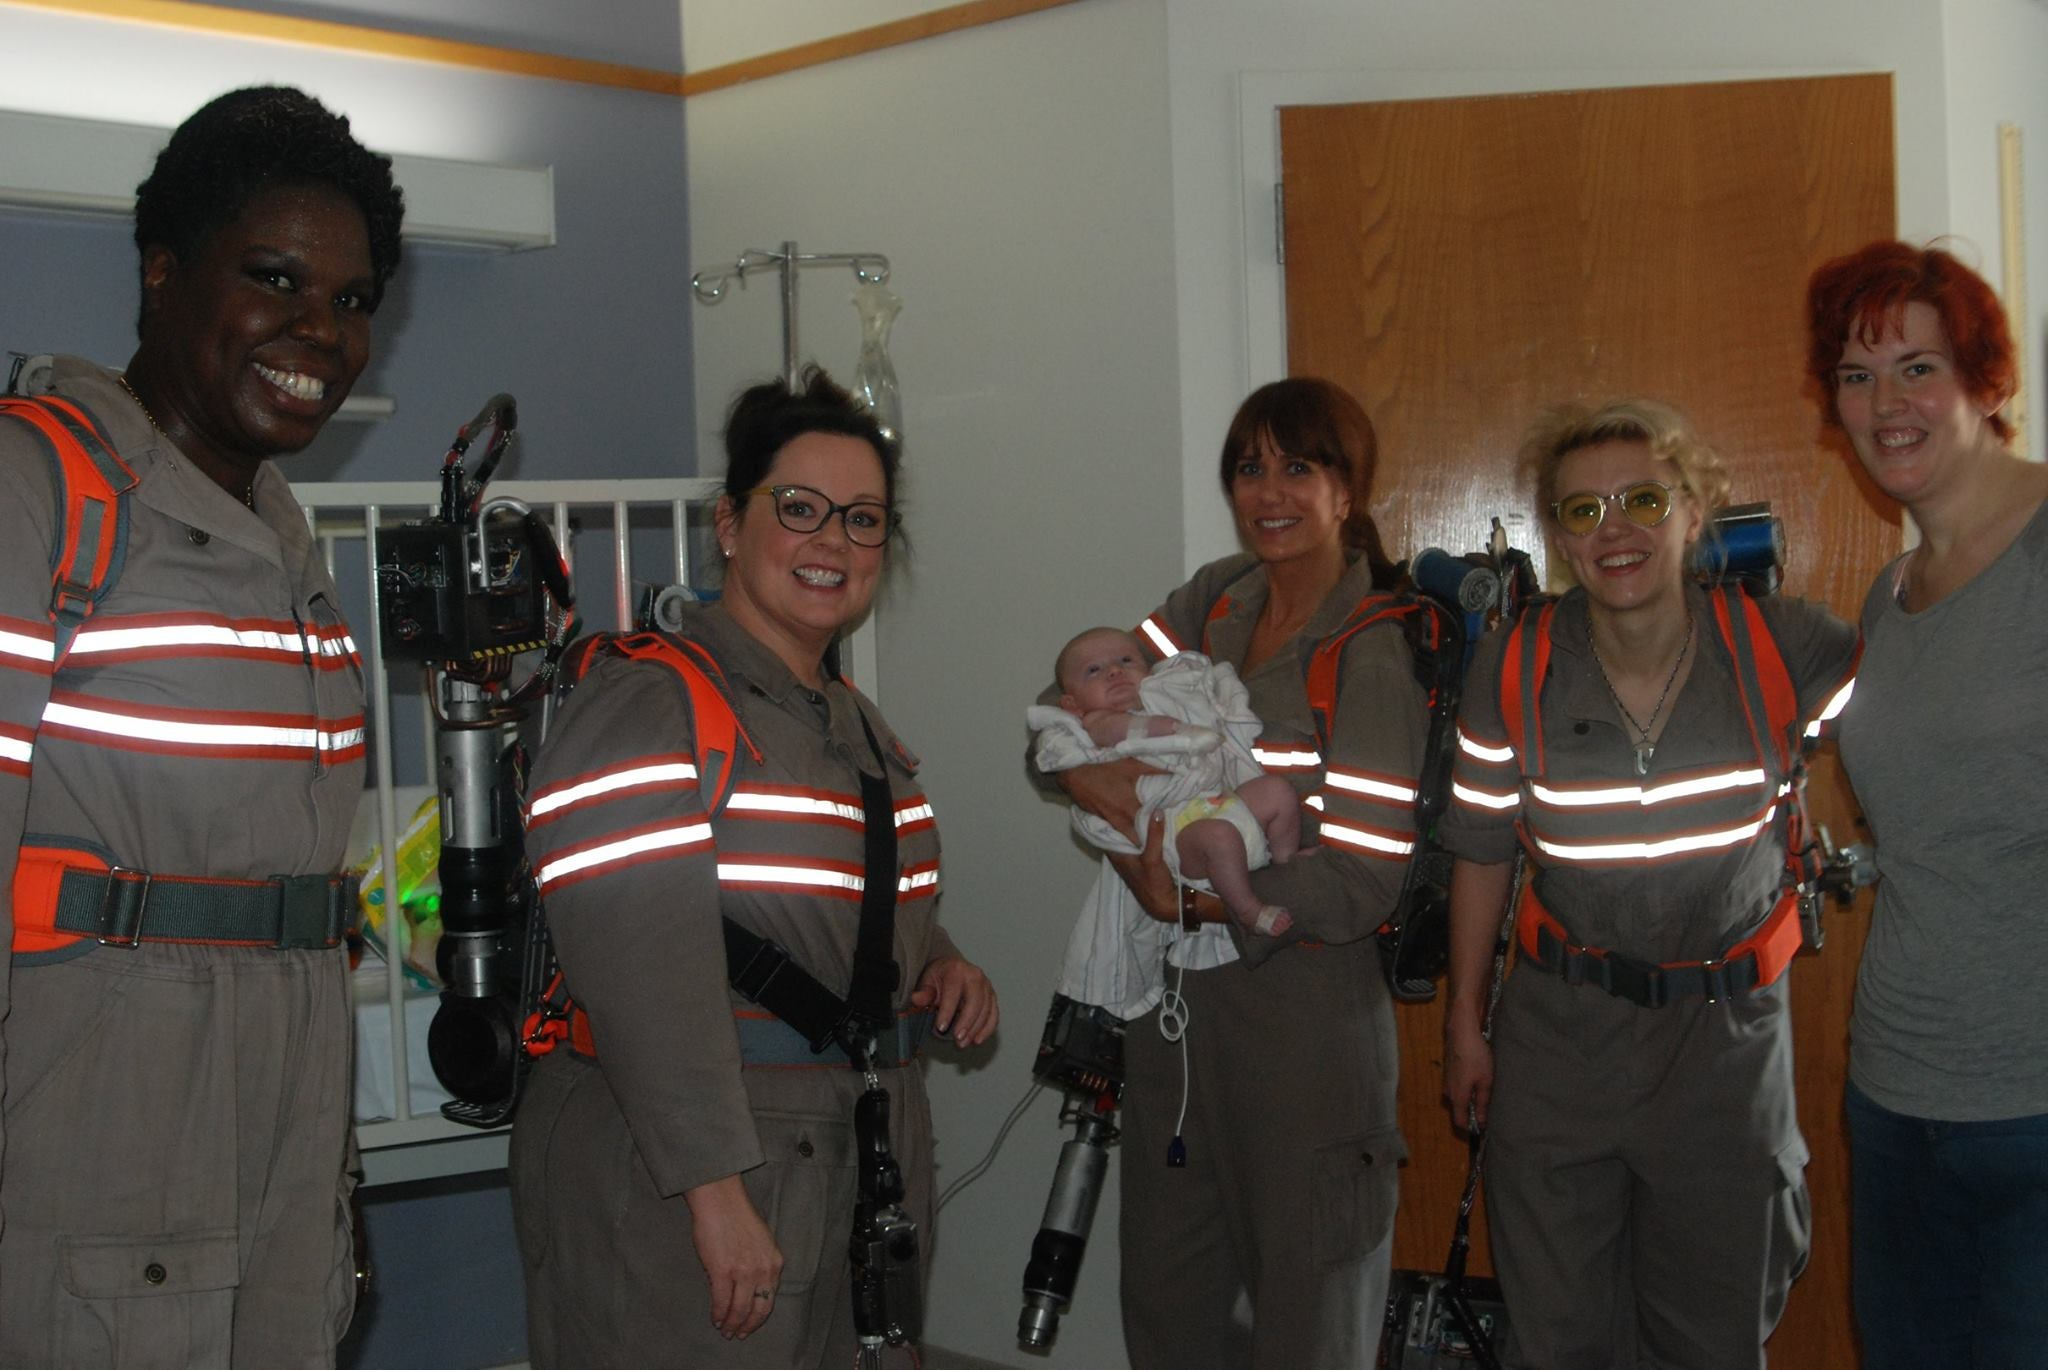 ... and Leslie Jones spent Saturday dressed in their Ghostbusters costumes visiting patients at the Floating Hospital for Children at Tufts Medical Center.  sc 1 st  Jezebel & New Ghostbusters Cast Visits Childrenu0027s Hospital; Attracts Trolls